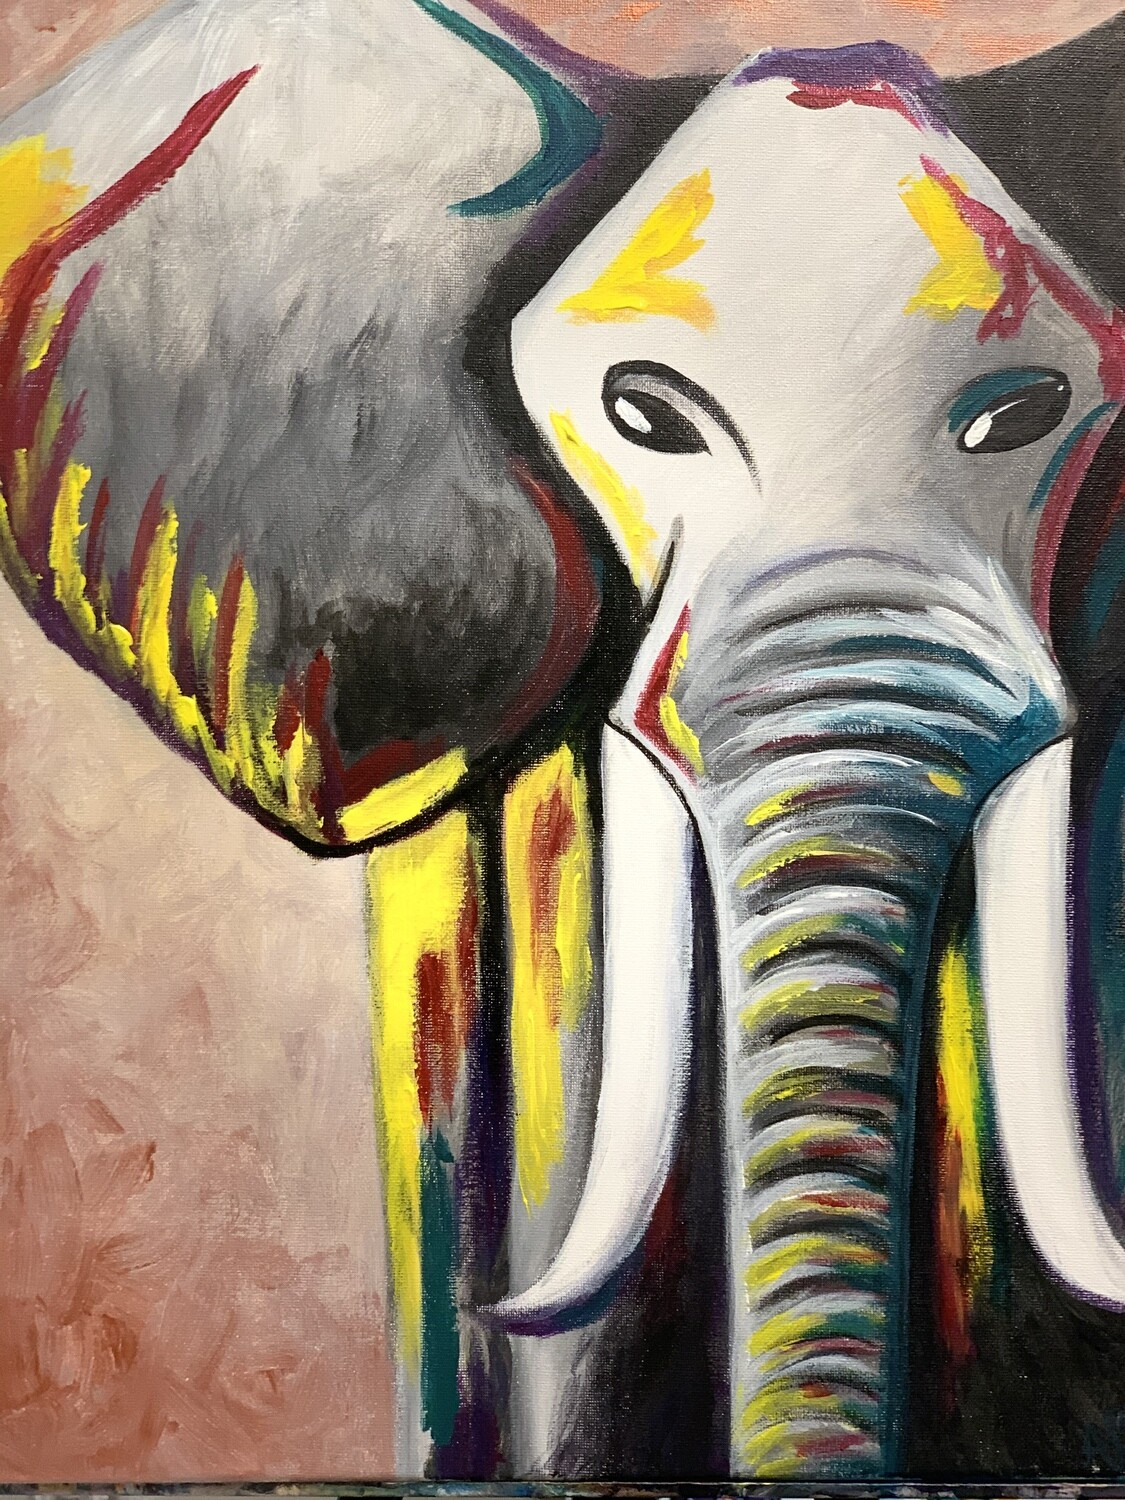 Digital painting class - Elephant